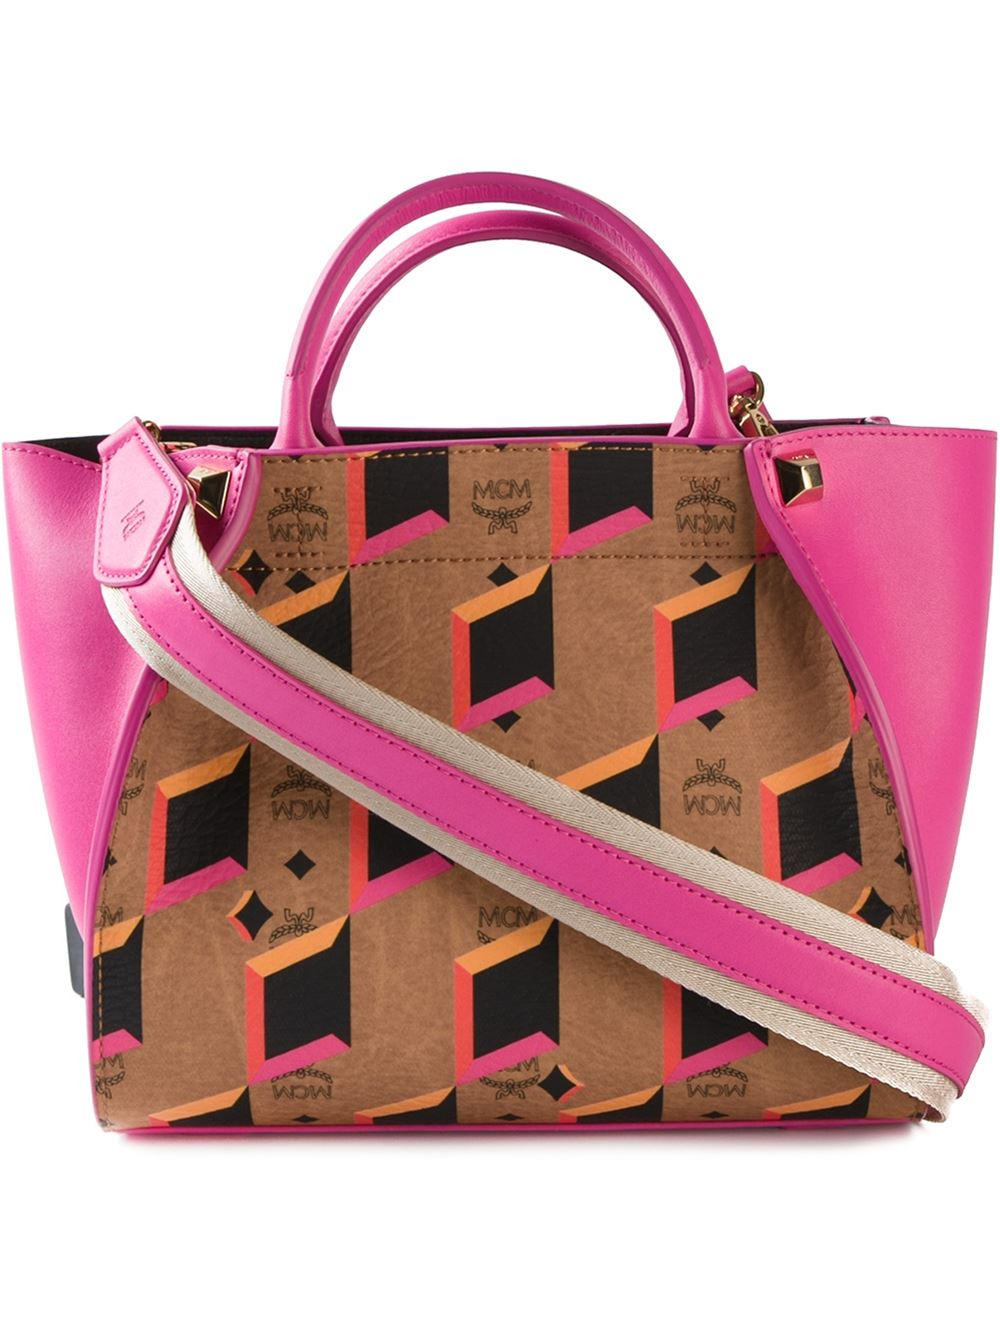 MCM Small 'Tulip' Tote in Pink & Purple (Pink)